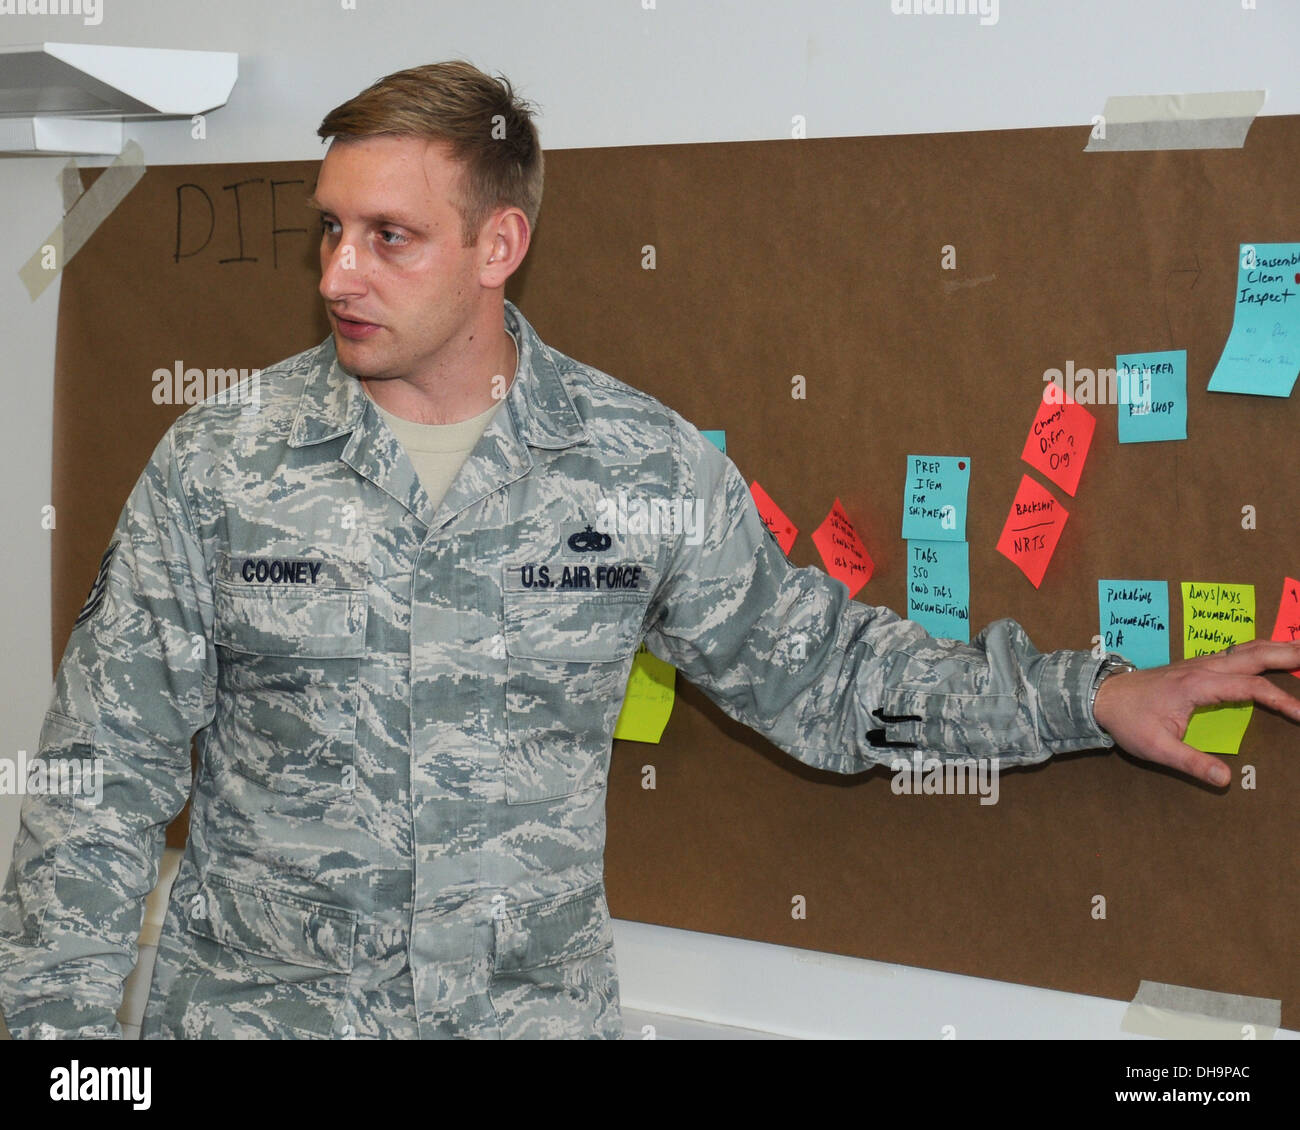 U.S. Air Force Tech. Sgt. Ron Cooney, 100th Maintenance Squadron NCO in charge of the maintenance analysis section from Johnstown, Pa., discusses opportunities to streamline processes and create synergy between the 100th Logistics Readiness Squadron and t - Stock Image